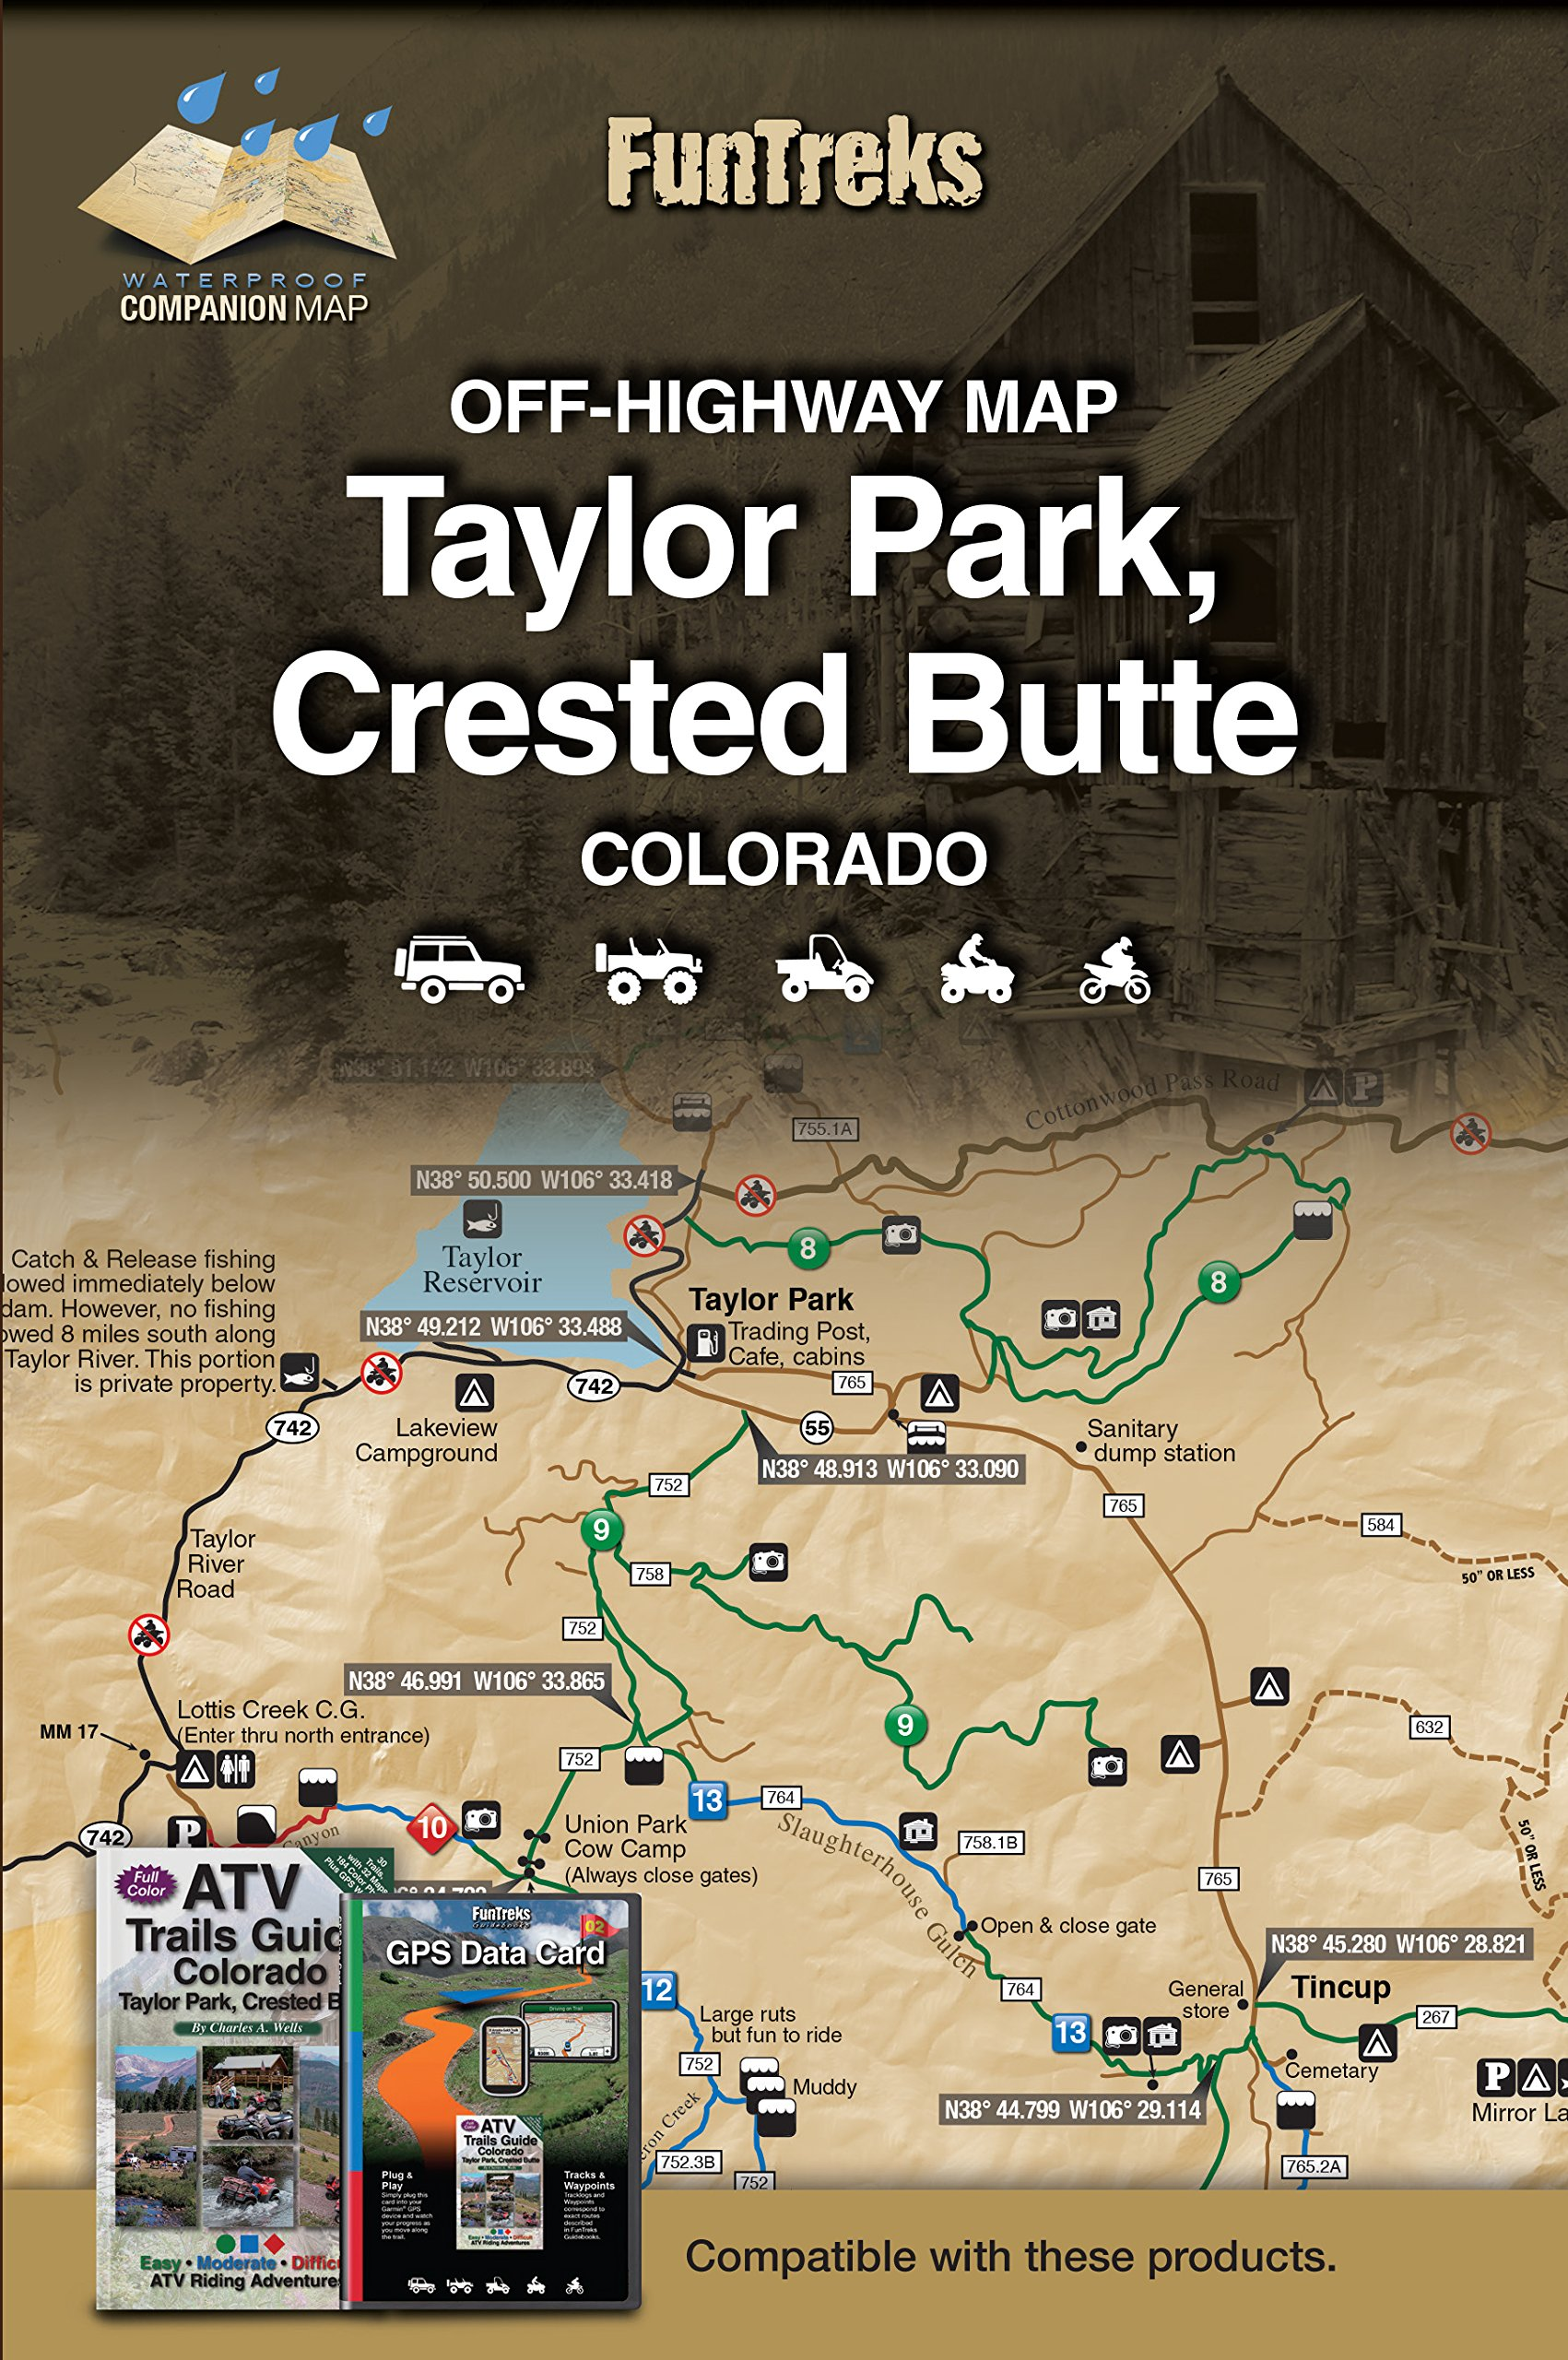 Taylor Park Colorado Map.Off Highway Map For Taylor Park Crested Butte Colorado Funtreks